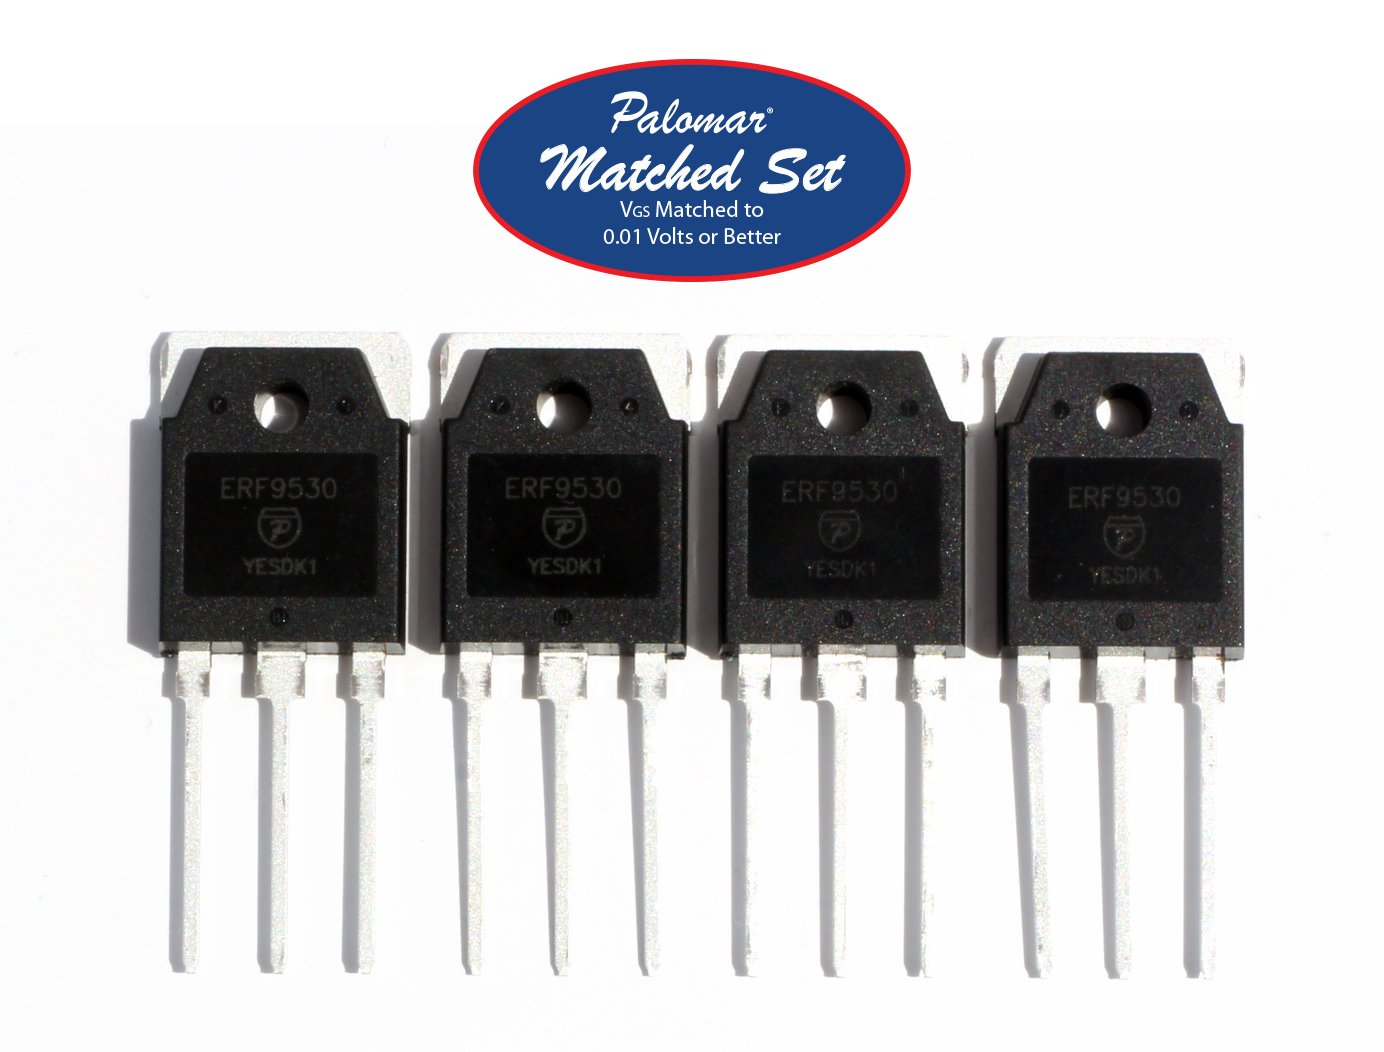 Matched Four (4) ERF9530 100 Watt PEP RF Power Mosfet Transistor in TO-3PN  Package